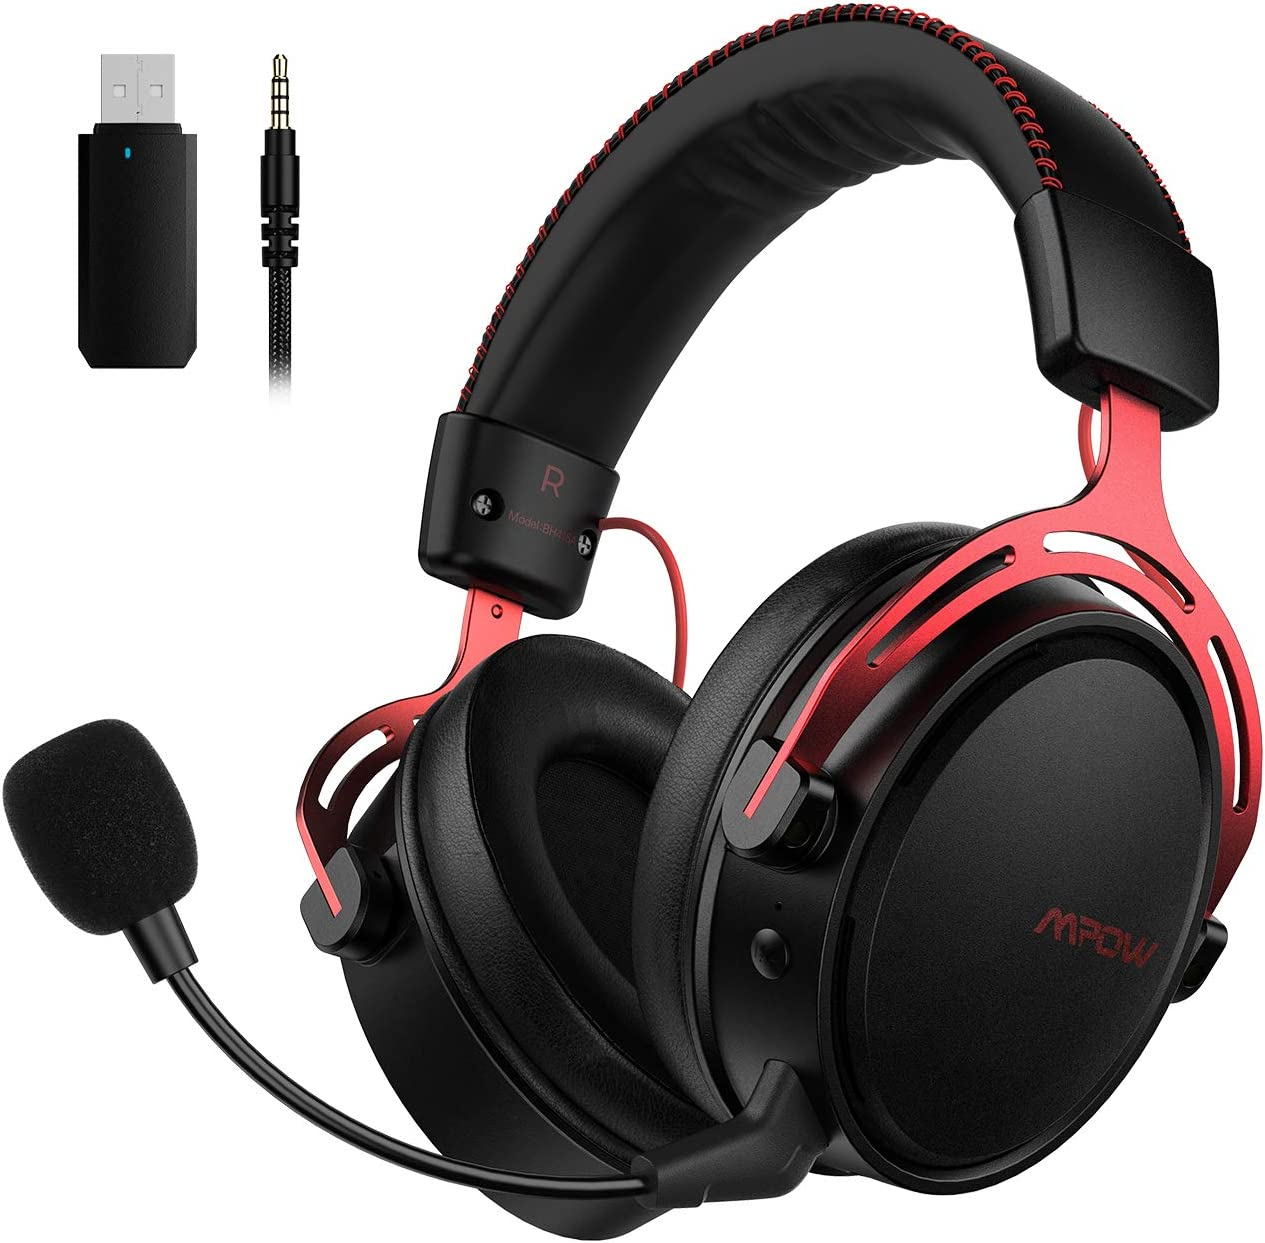 Mpow Air 2 4g Wireless Gaming Headset For Ps4 Pc Computer Headset With Dual Chamber Driver 17 Hour Of Wireless Use Wired Optional Detachable Noise Cancelling Mic Bass Over Ear Gaming Headphones Amazon Ca Electronics